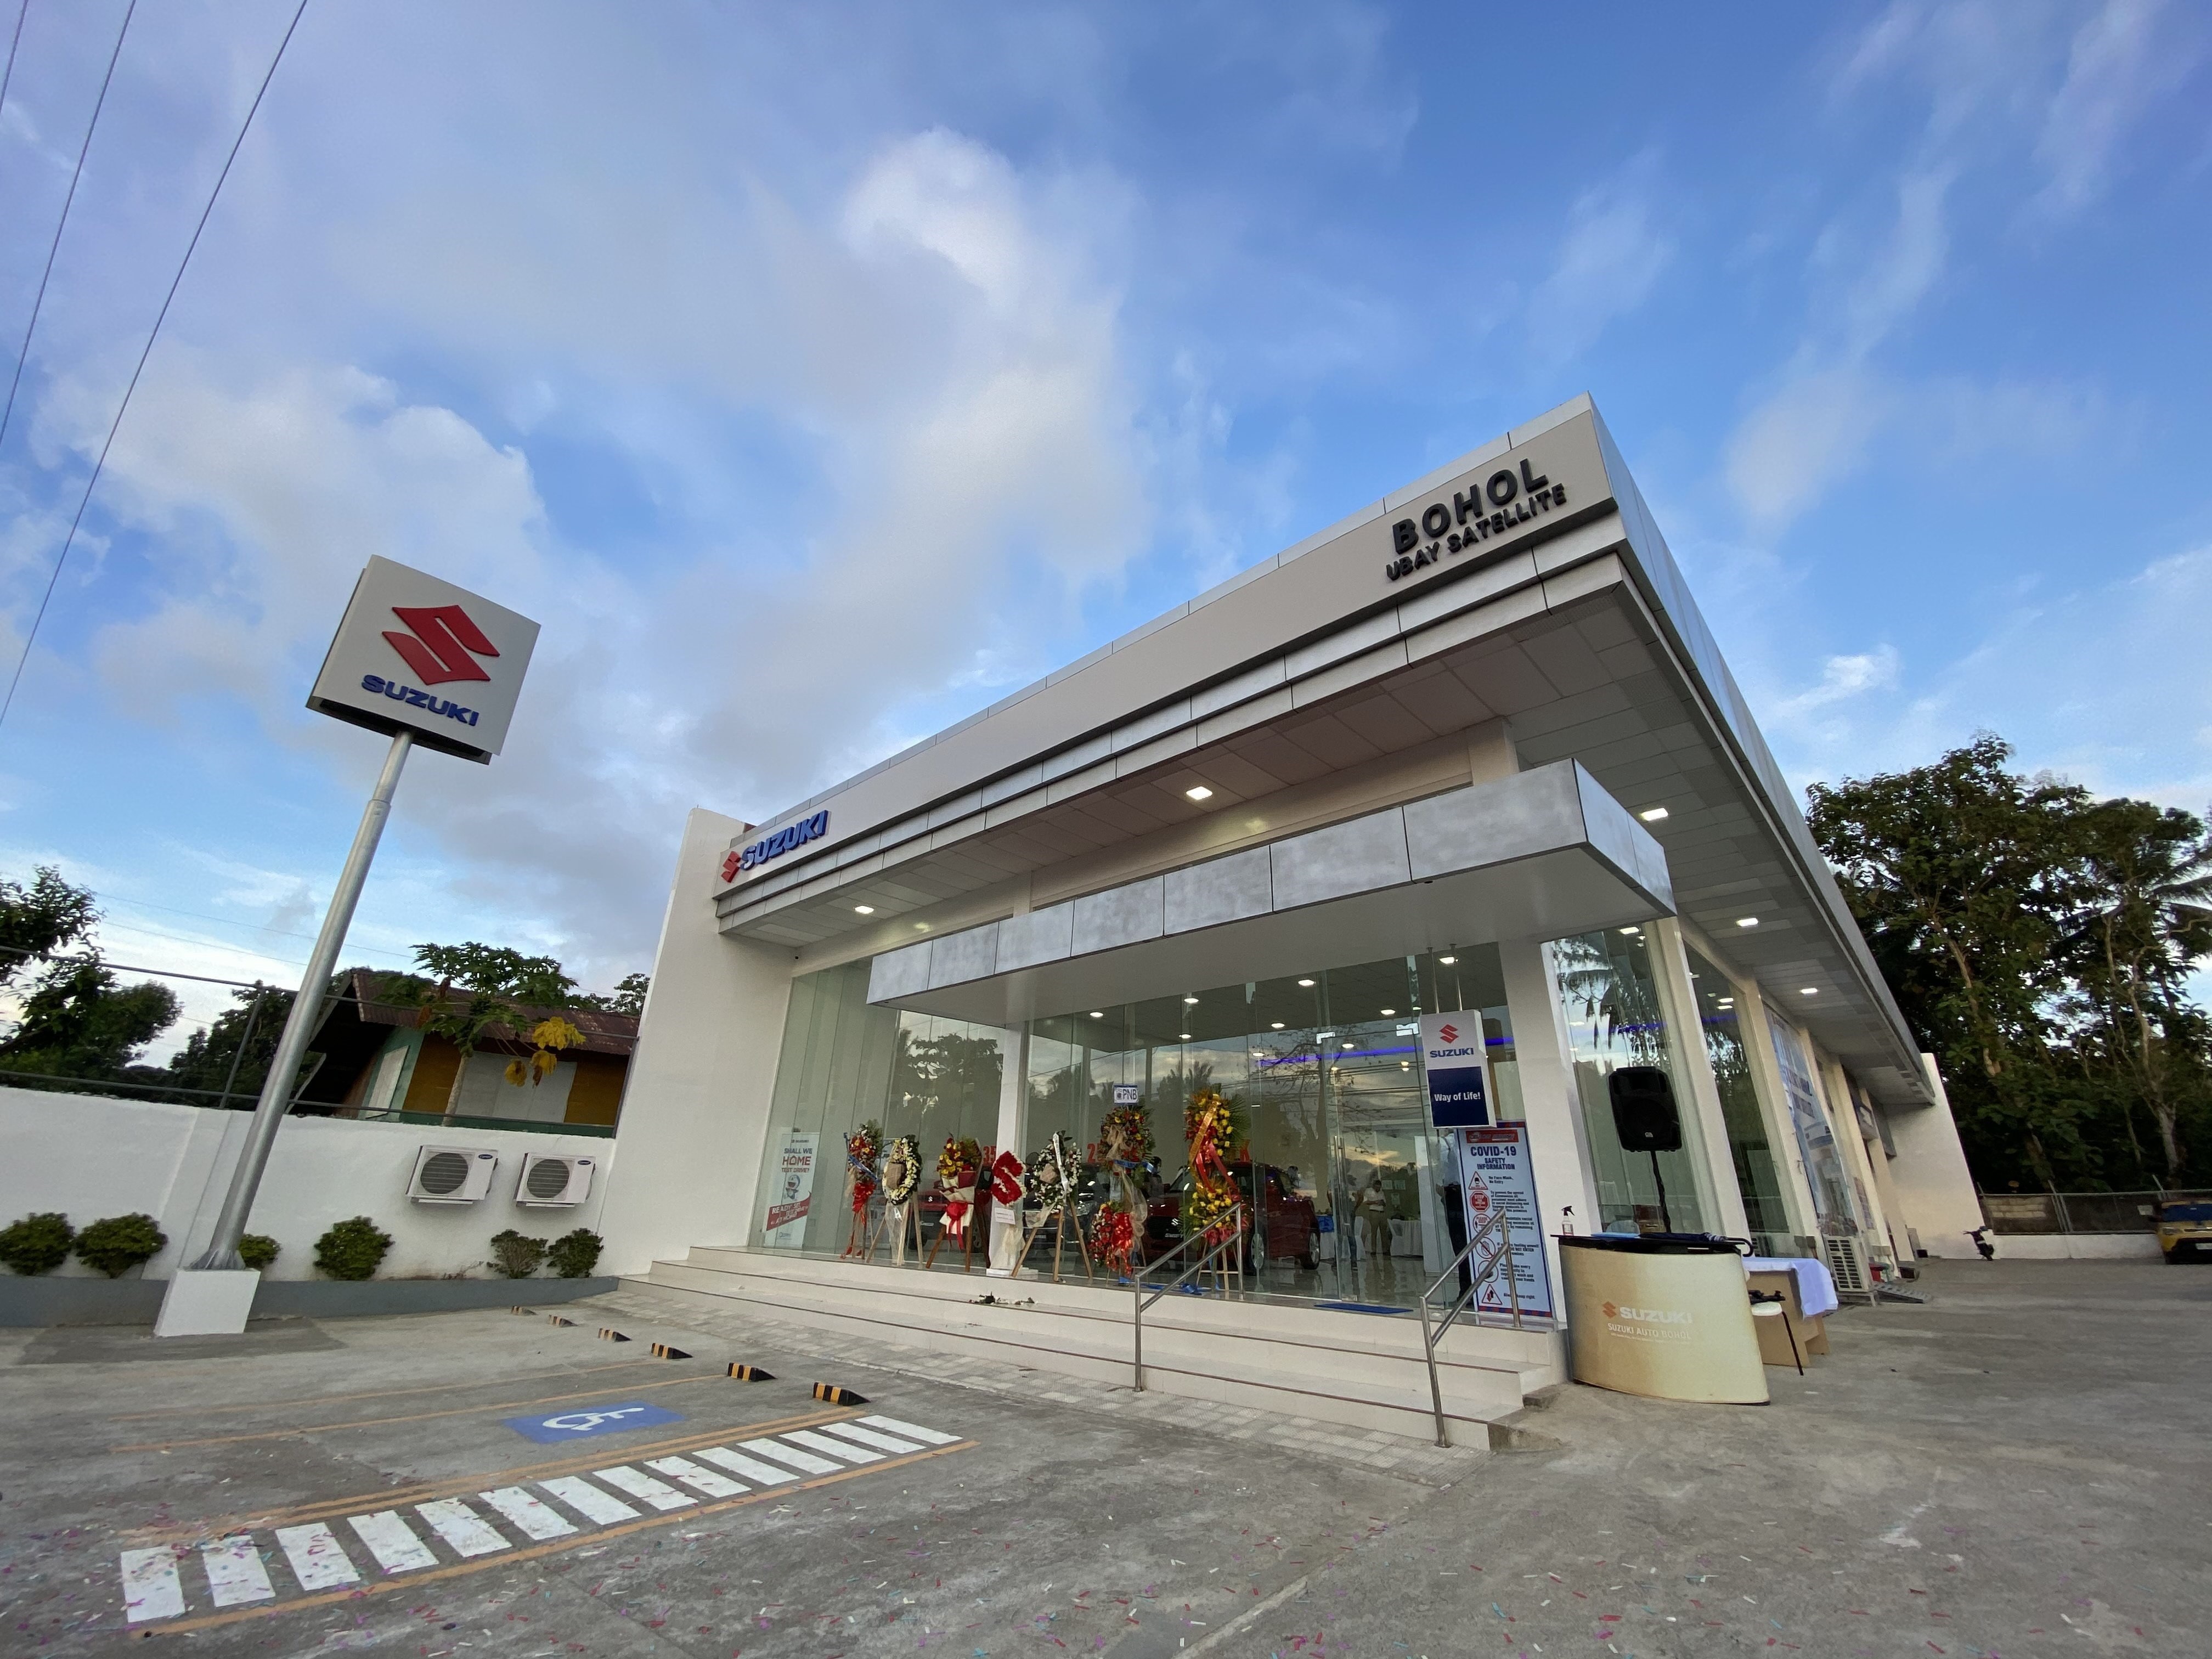 Suzuki Philippines accelerates Central Visayas presence with new satellite dealership